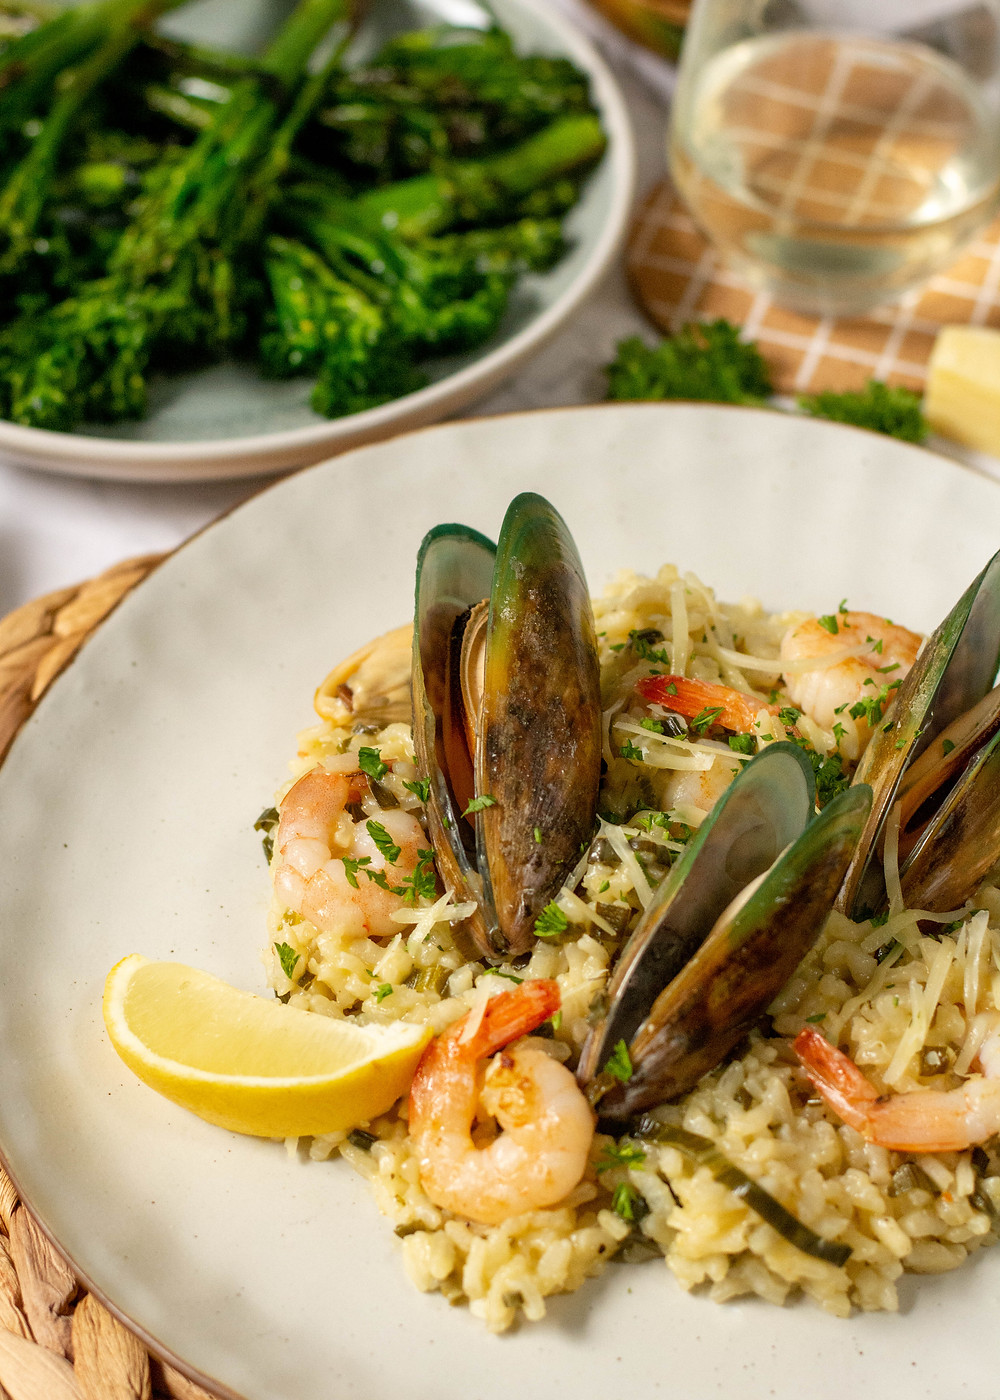 rmussel and prawn risotto with broccoli on a table scape